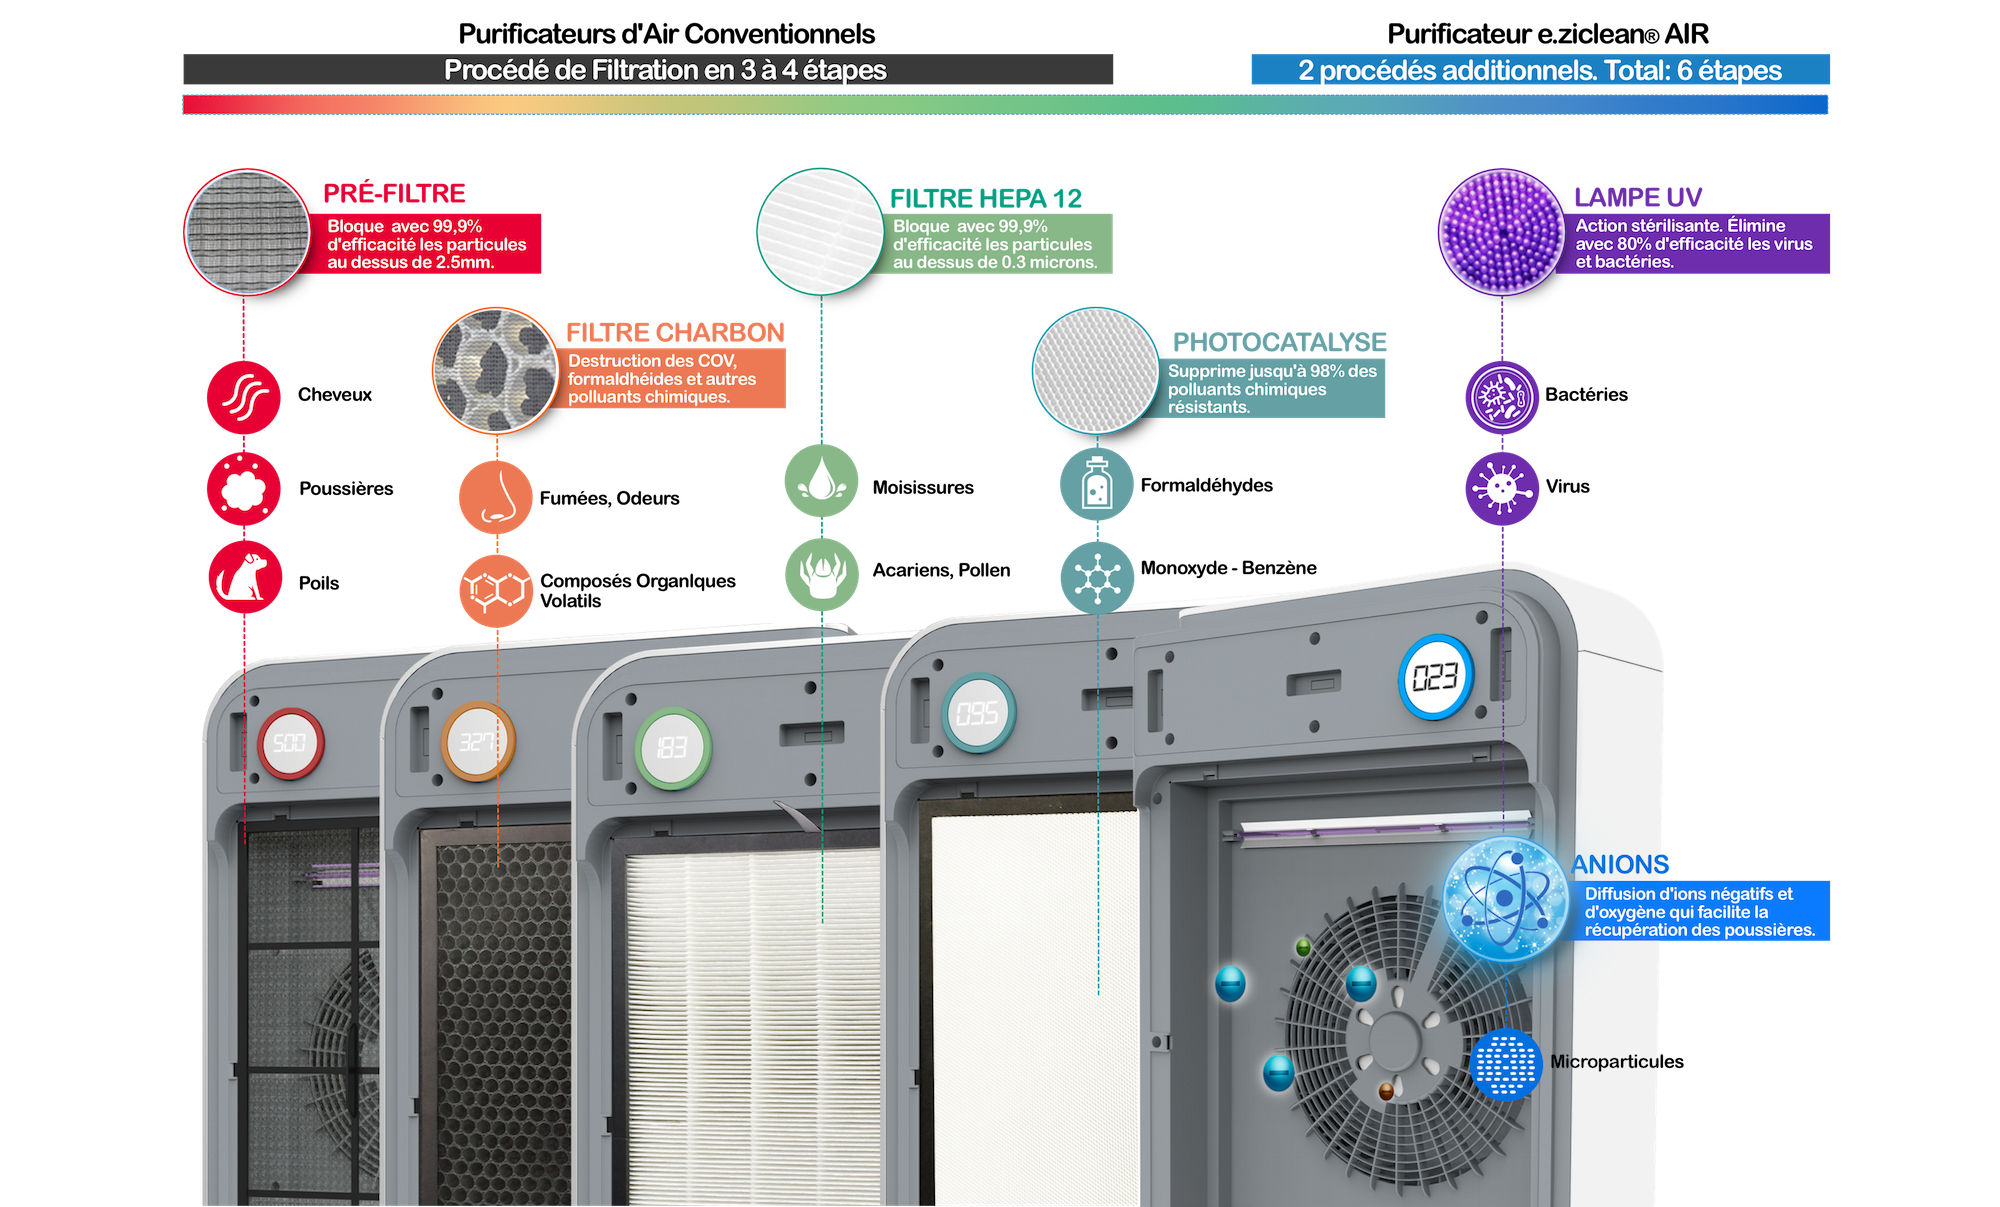 Purificateur d'air photocatalyse